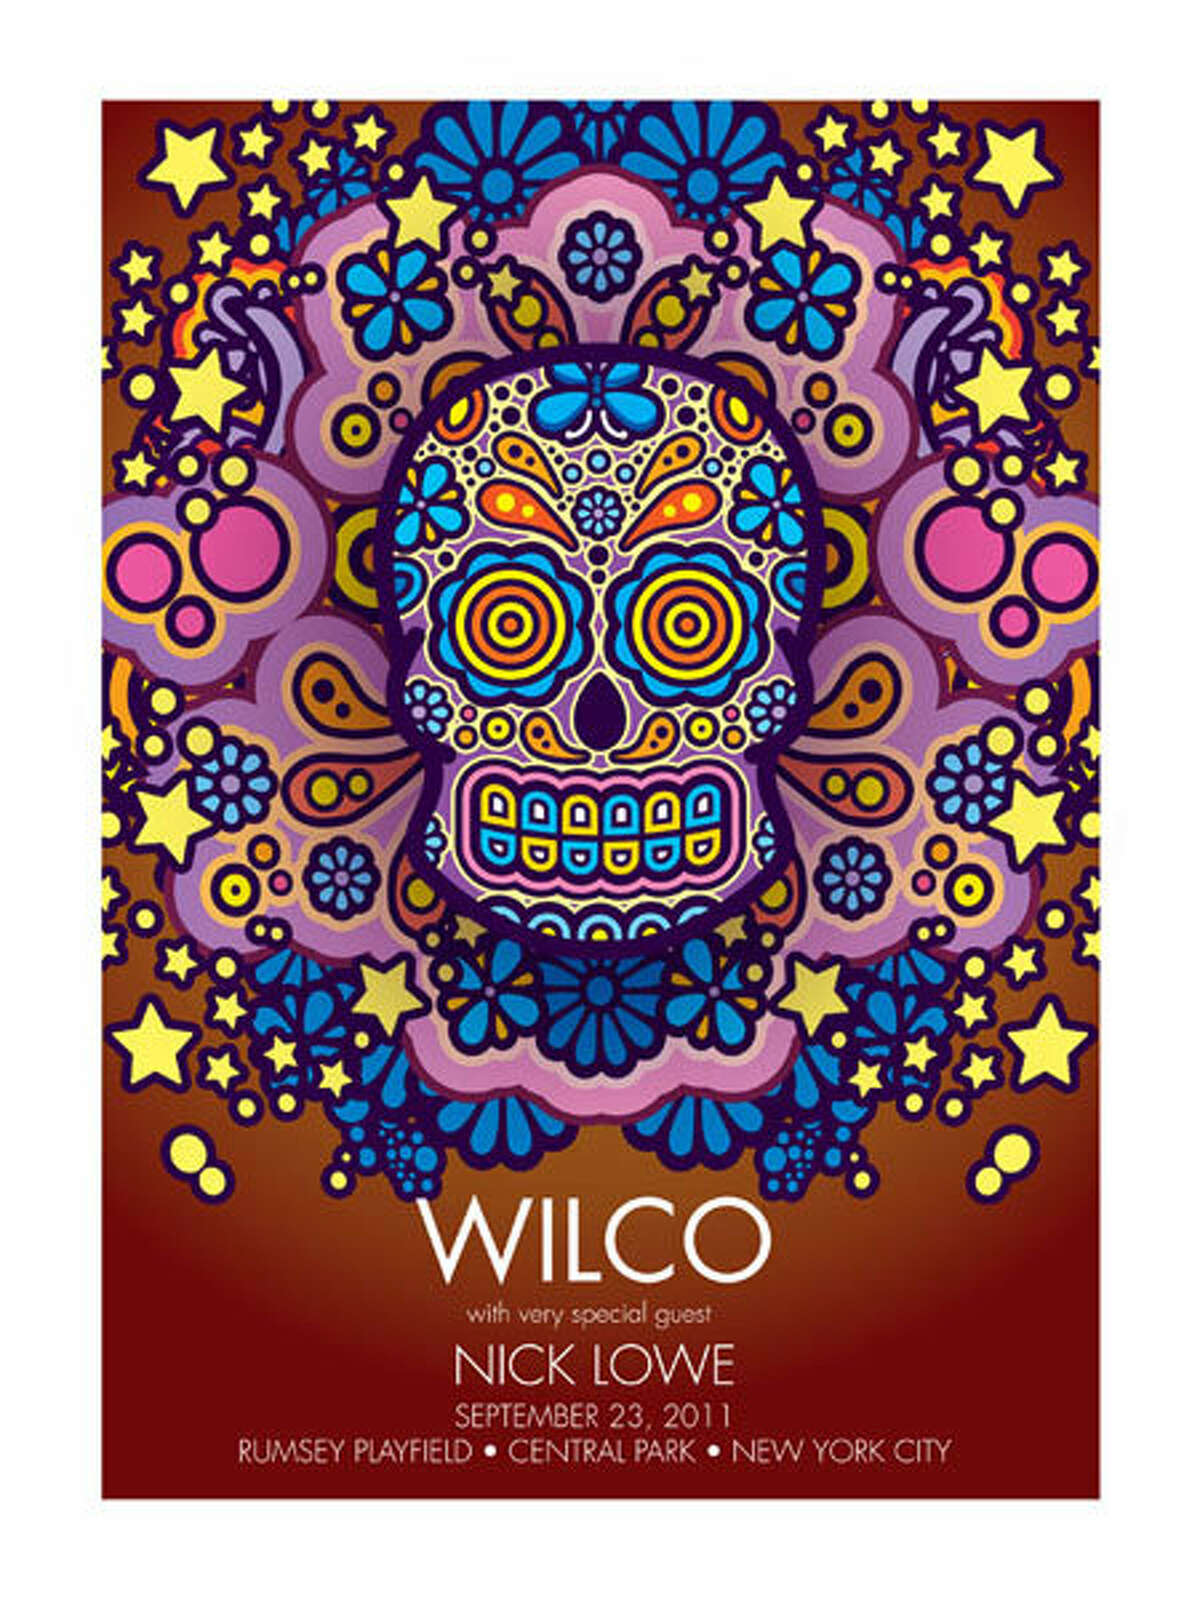 image of a poster for a show by rock band Wilco by local artist Uncle Charlie Hardwick